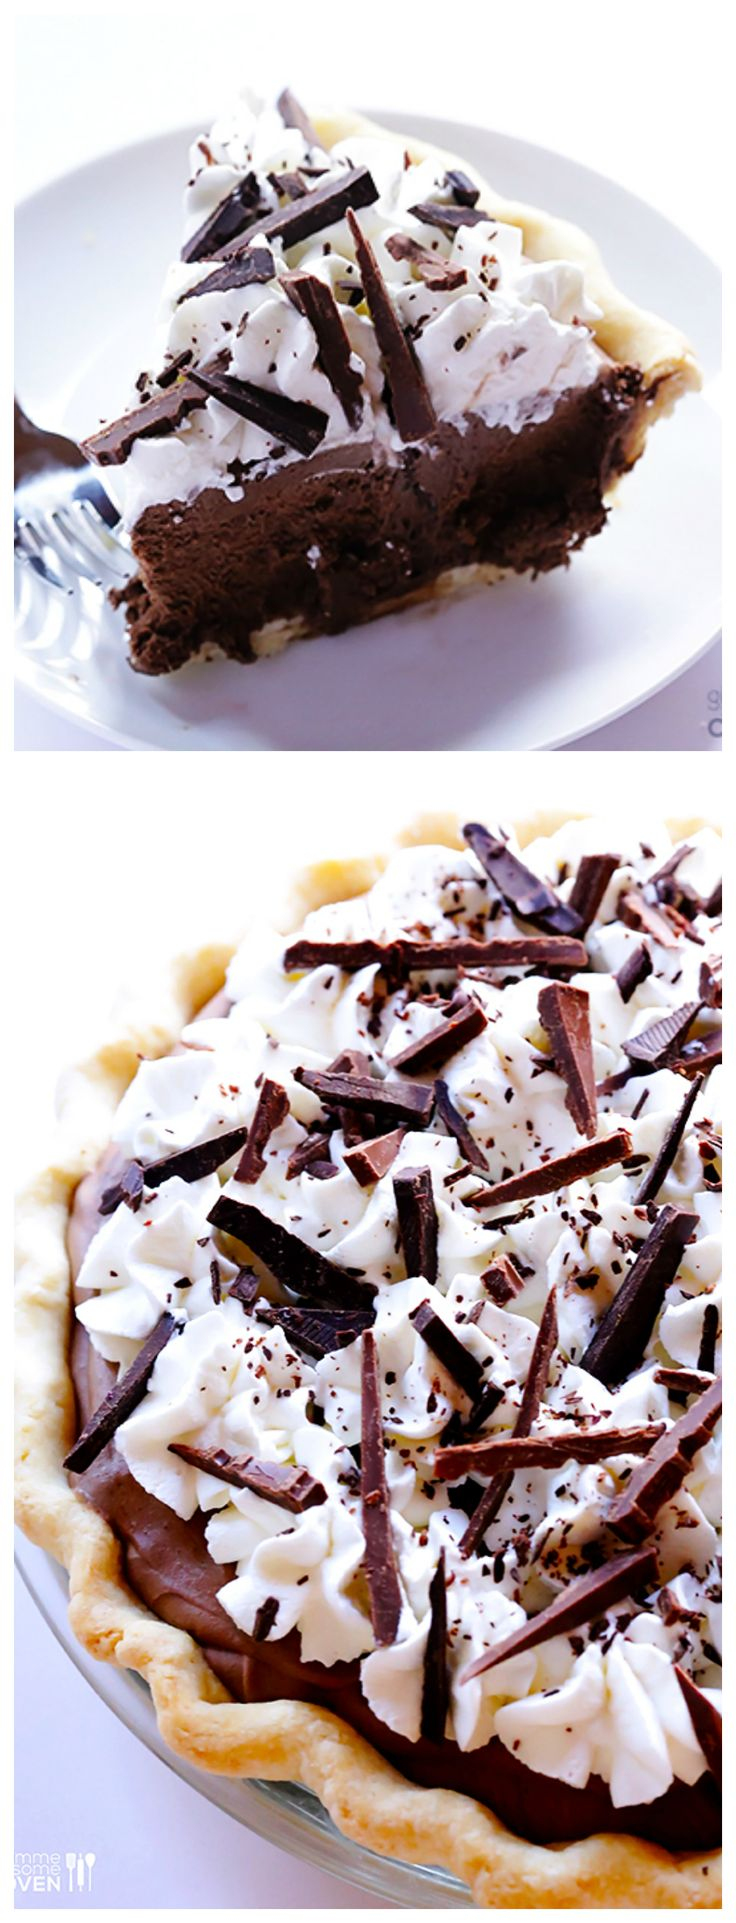 French Silk Pie (Chocolate Pie) -- much easier to make than you may think, and ridiculously good.